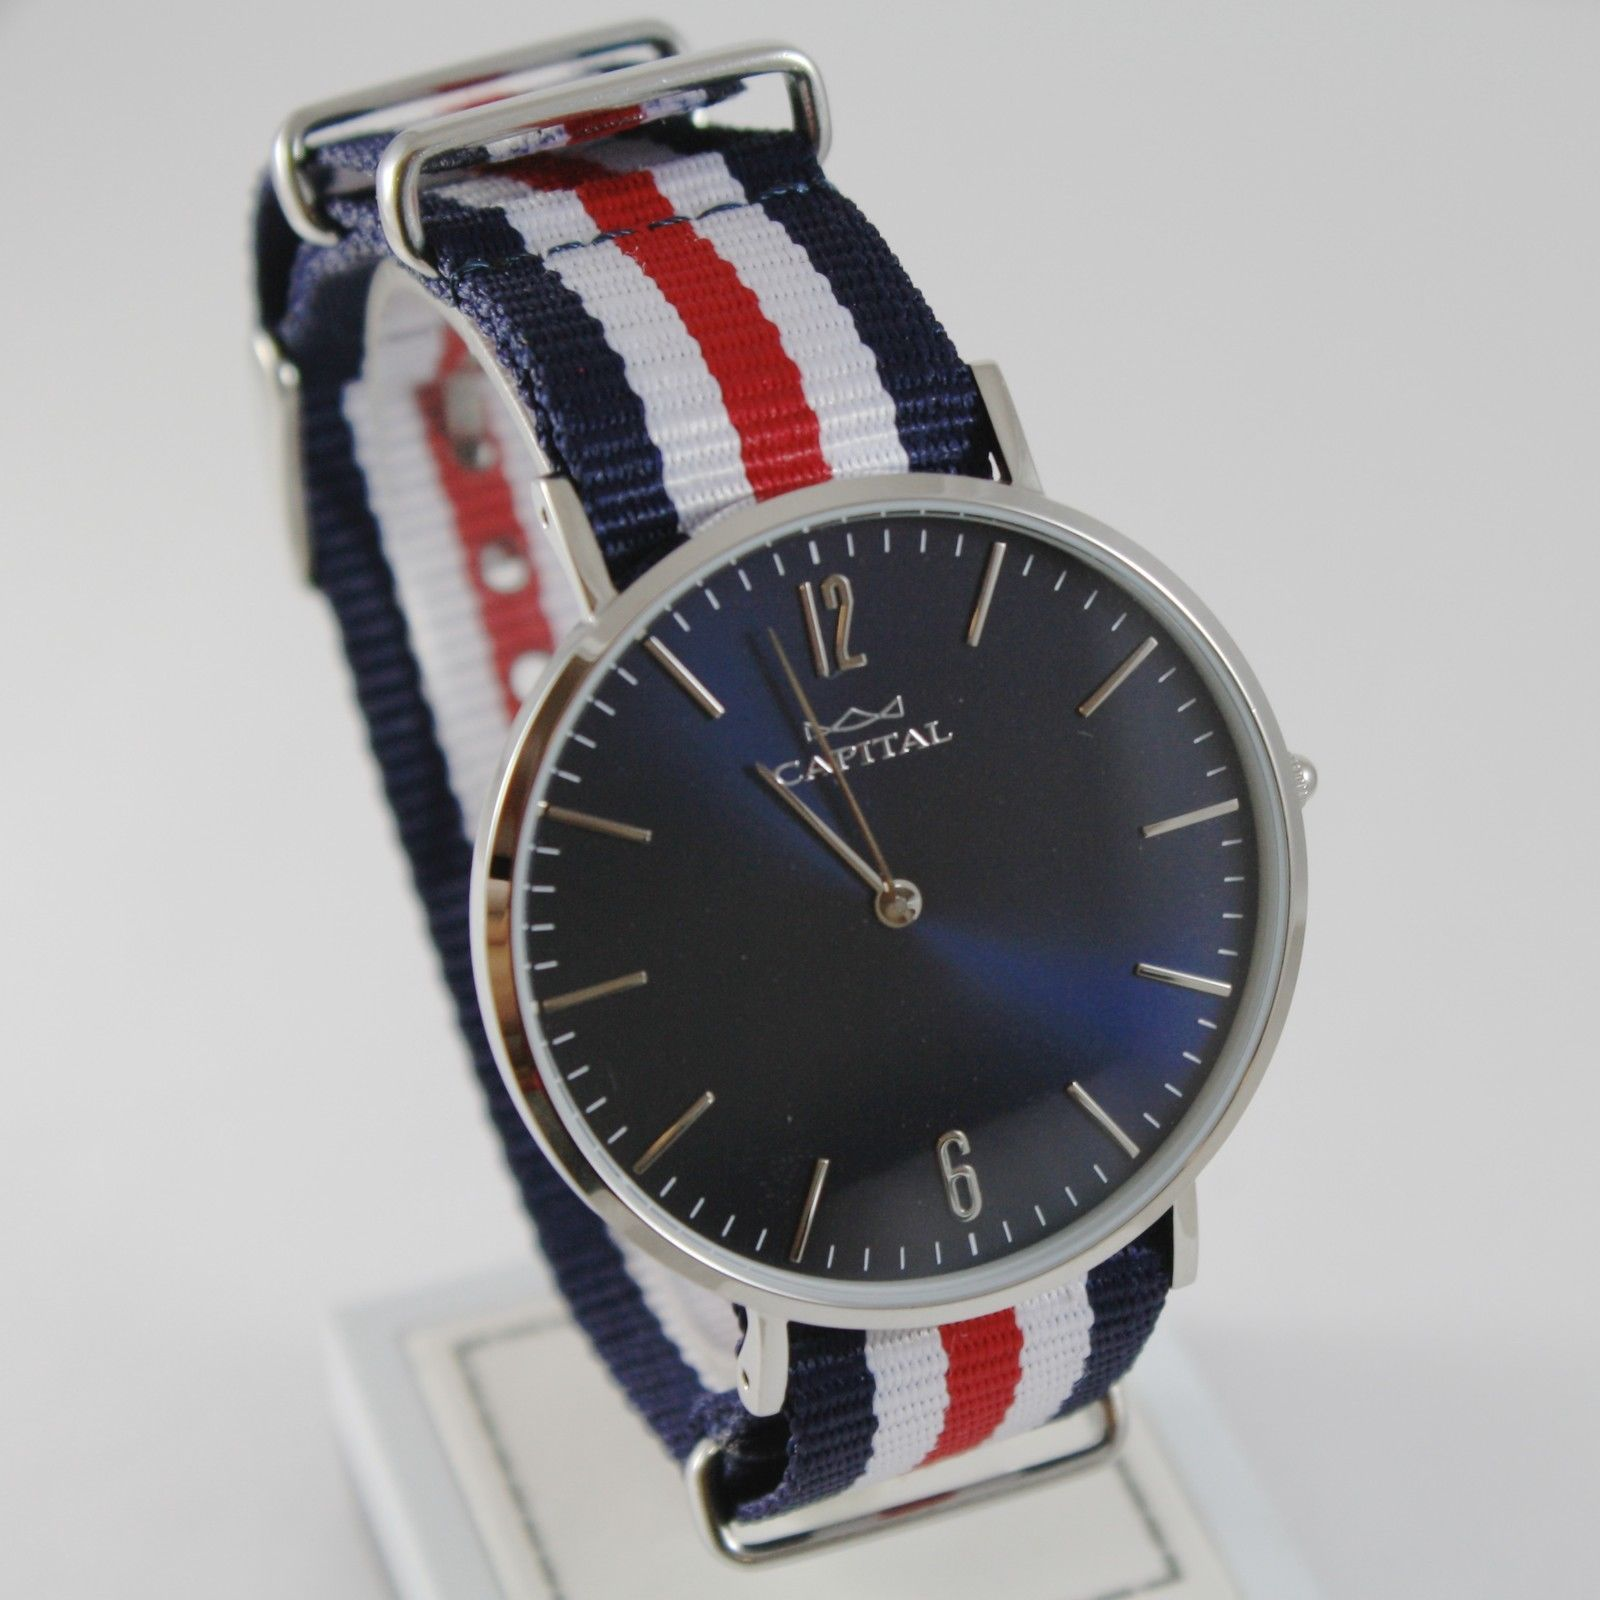 CAPITAL WATCH QUARTZ MOVEMENT 41 MM CASE, BLUE, RED AND WHITE FABRIC BAND NYLON